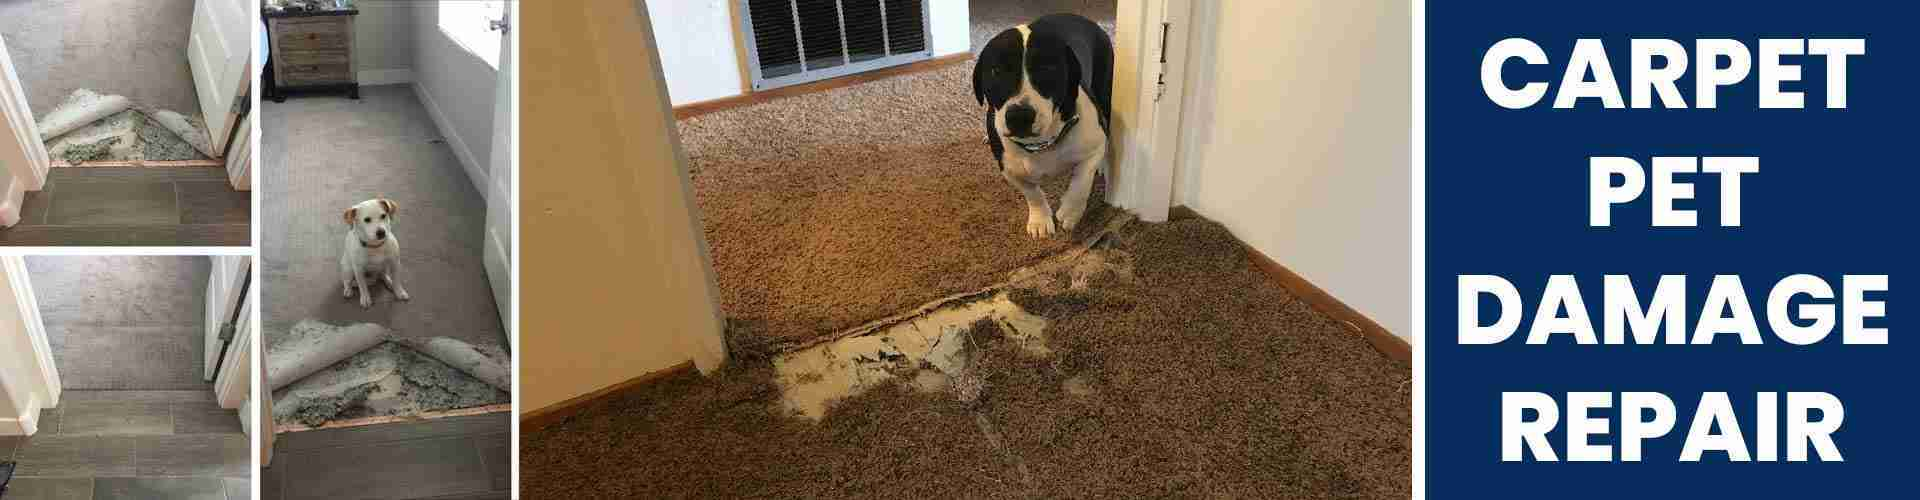 Carpet Pet Damage Repair Perth